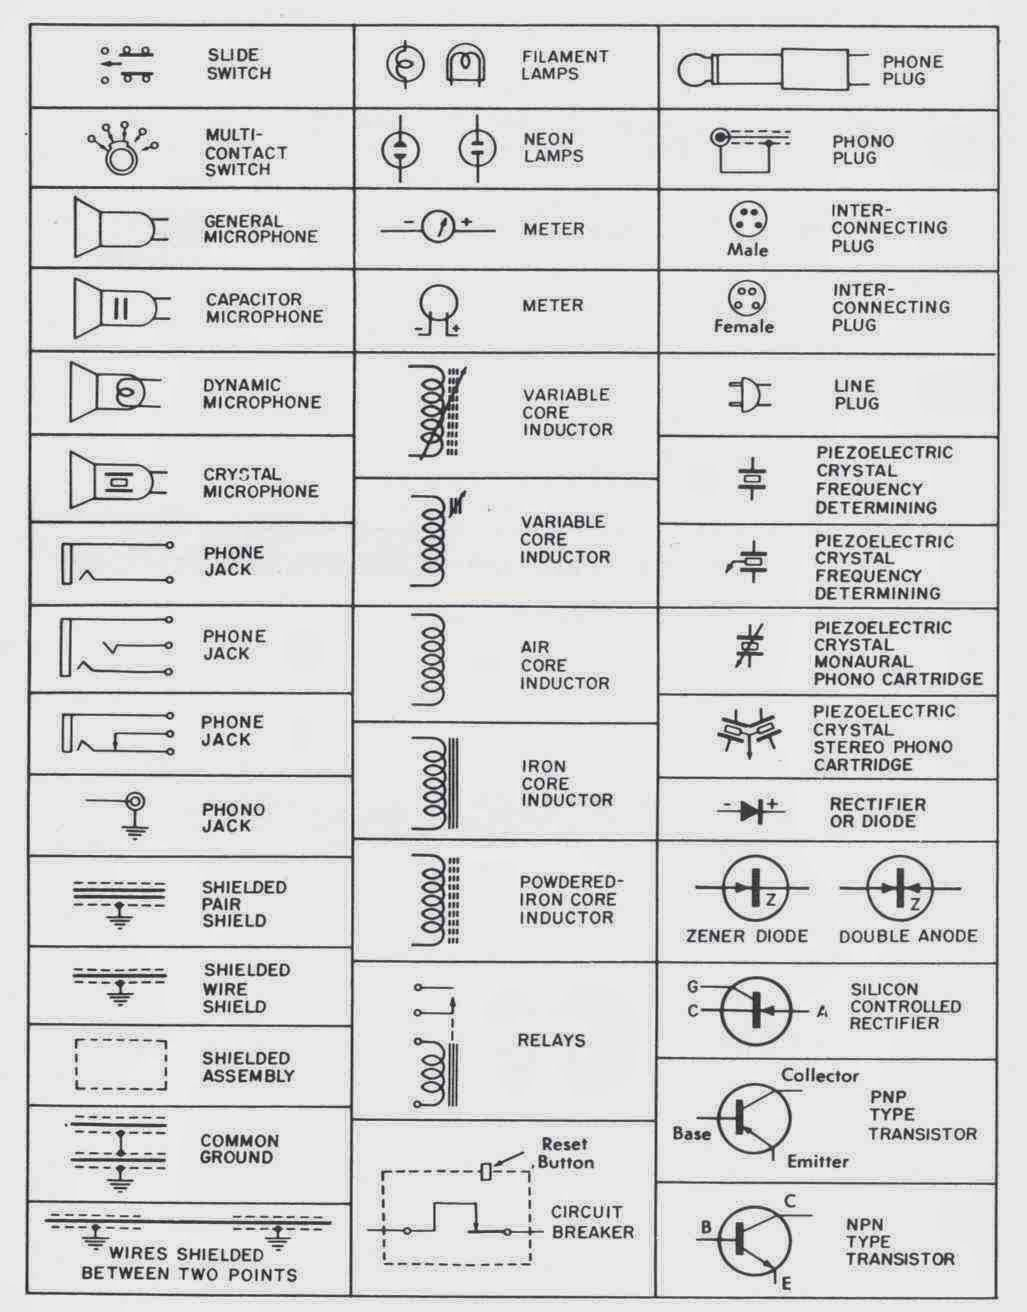 Electrical Symbols 11 ~ Electrical Engineering Pics | ELECTRIC ...